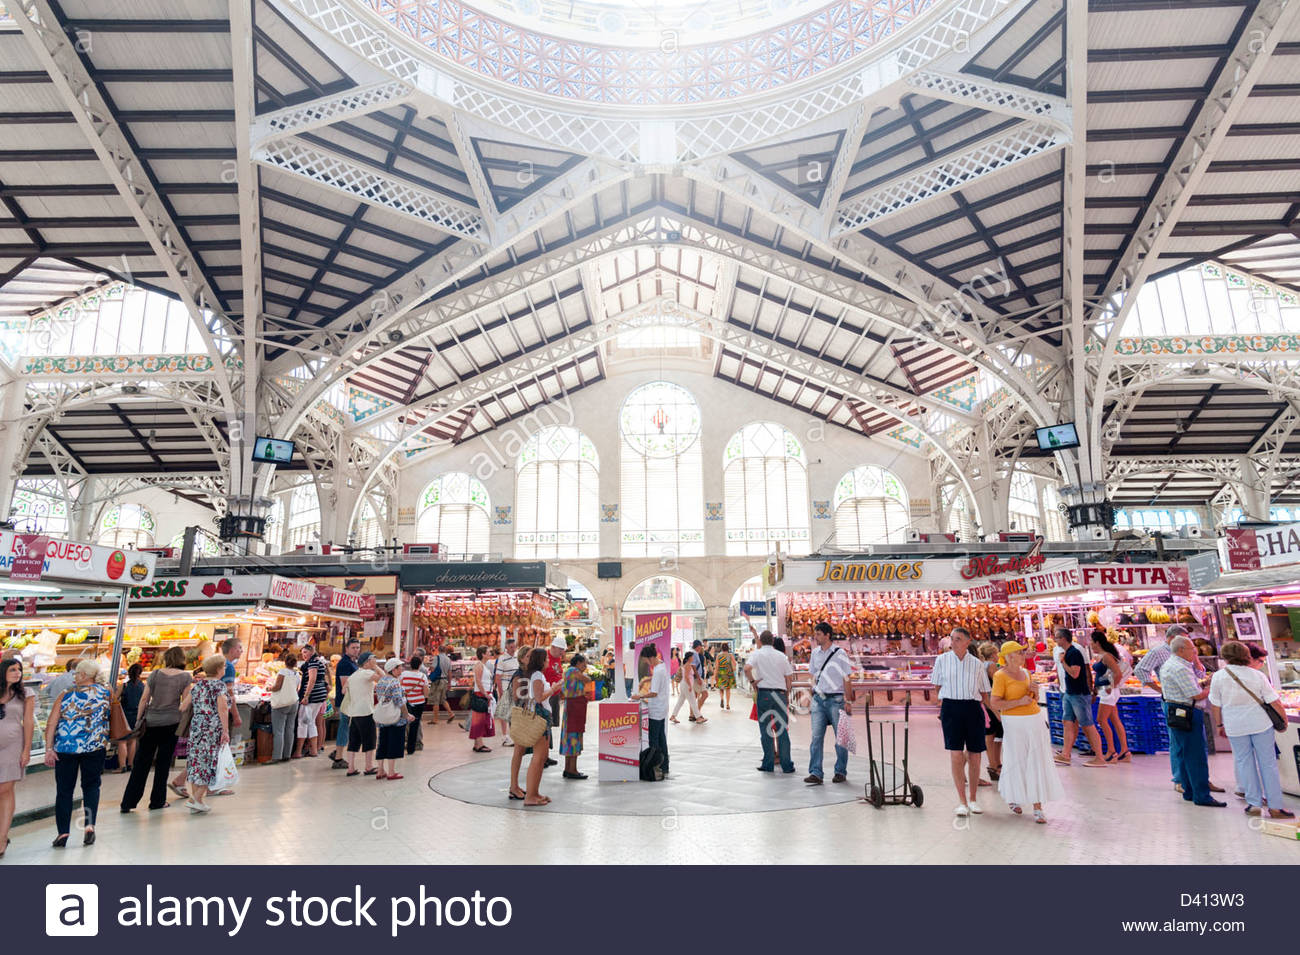 Inside the Central Market, Valencia, Spain - Stock Image